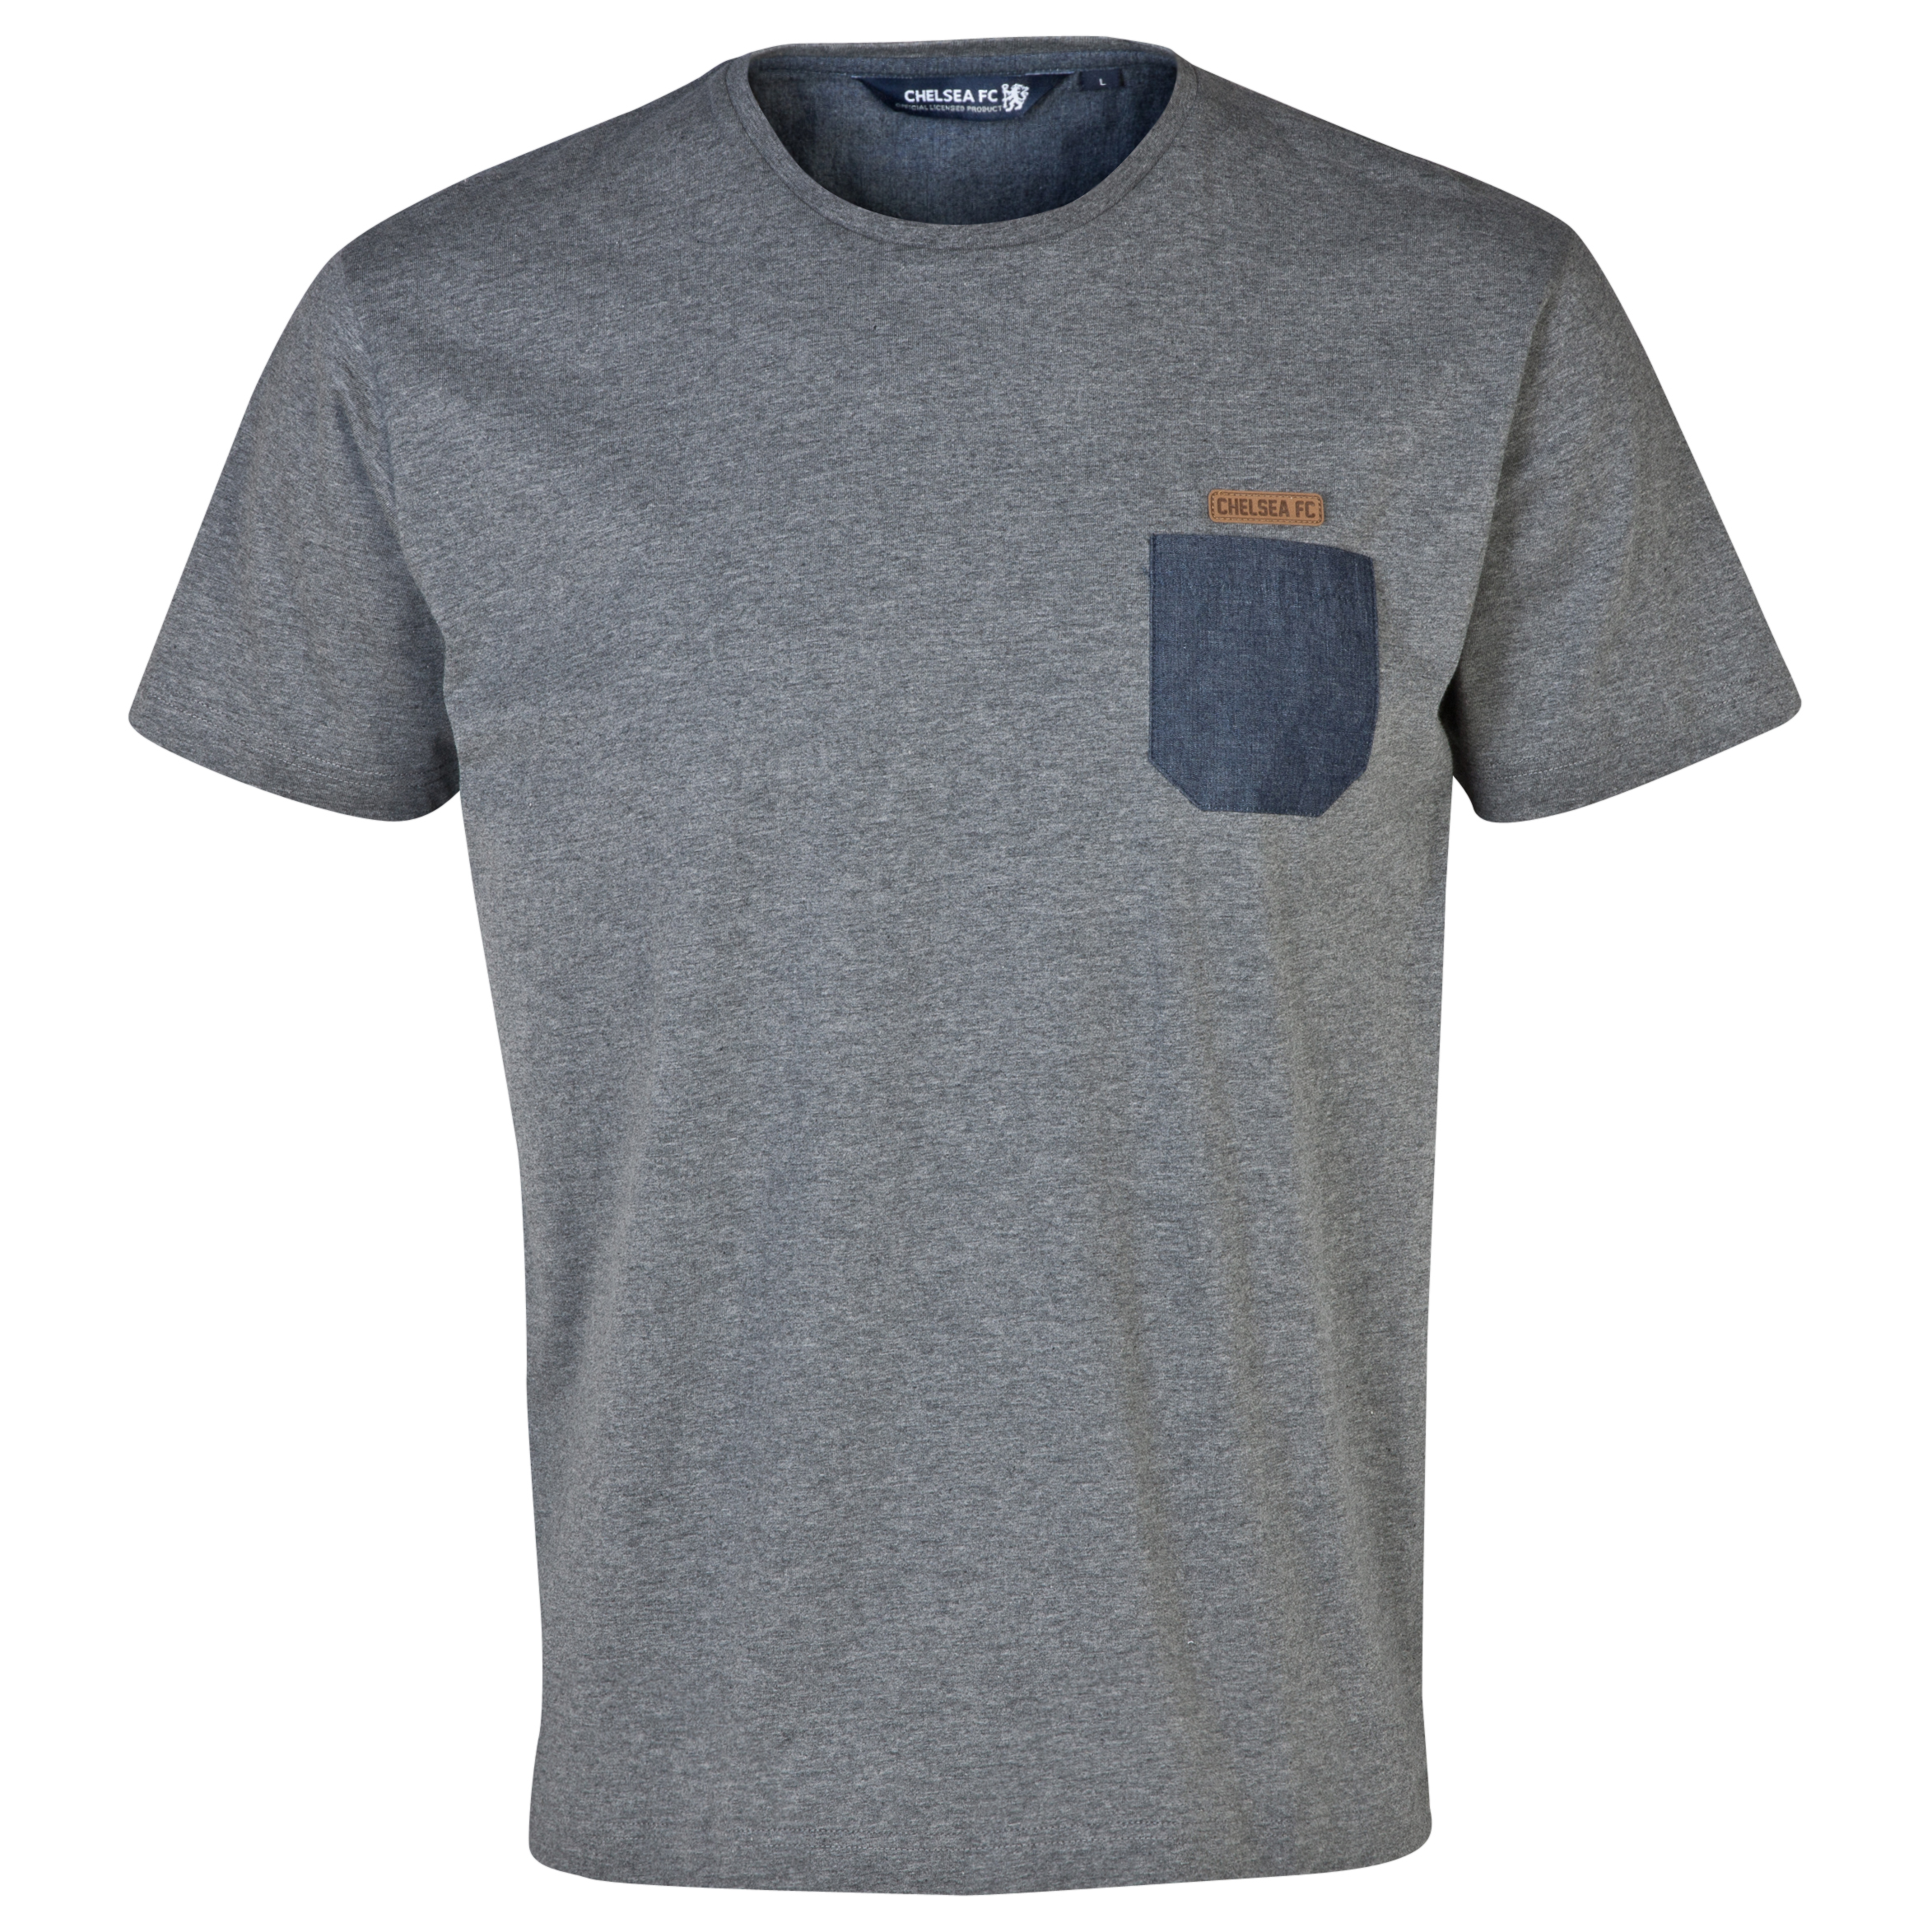 Chelsea Fashion Chambray Pocket T-Shirt - Mens Grey